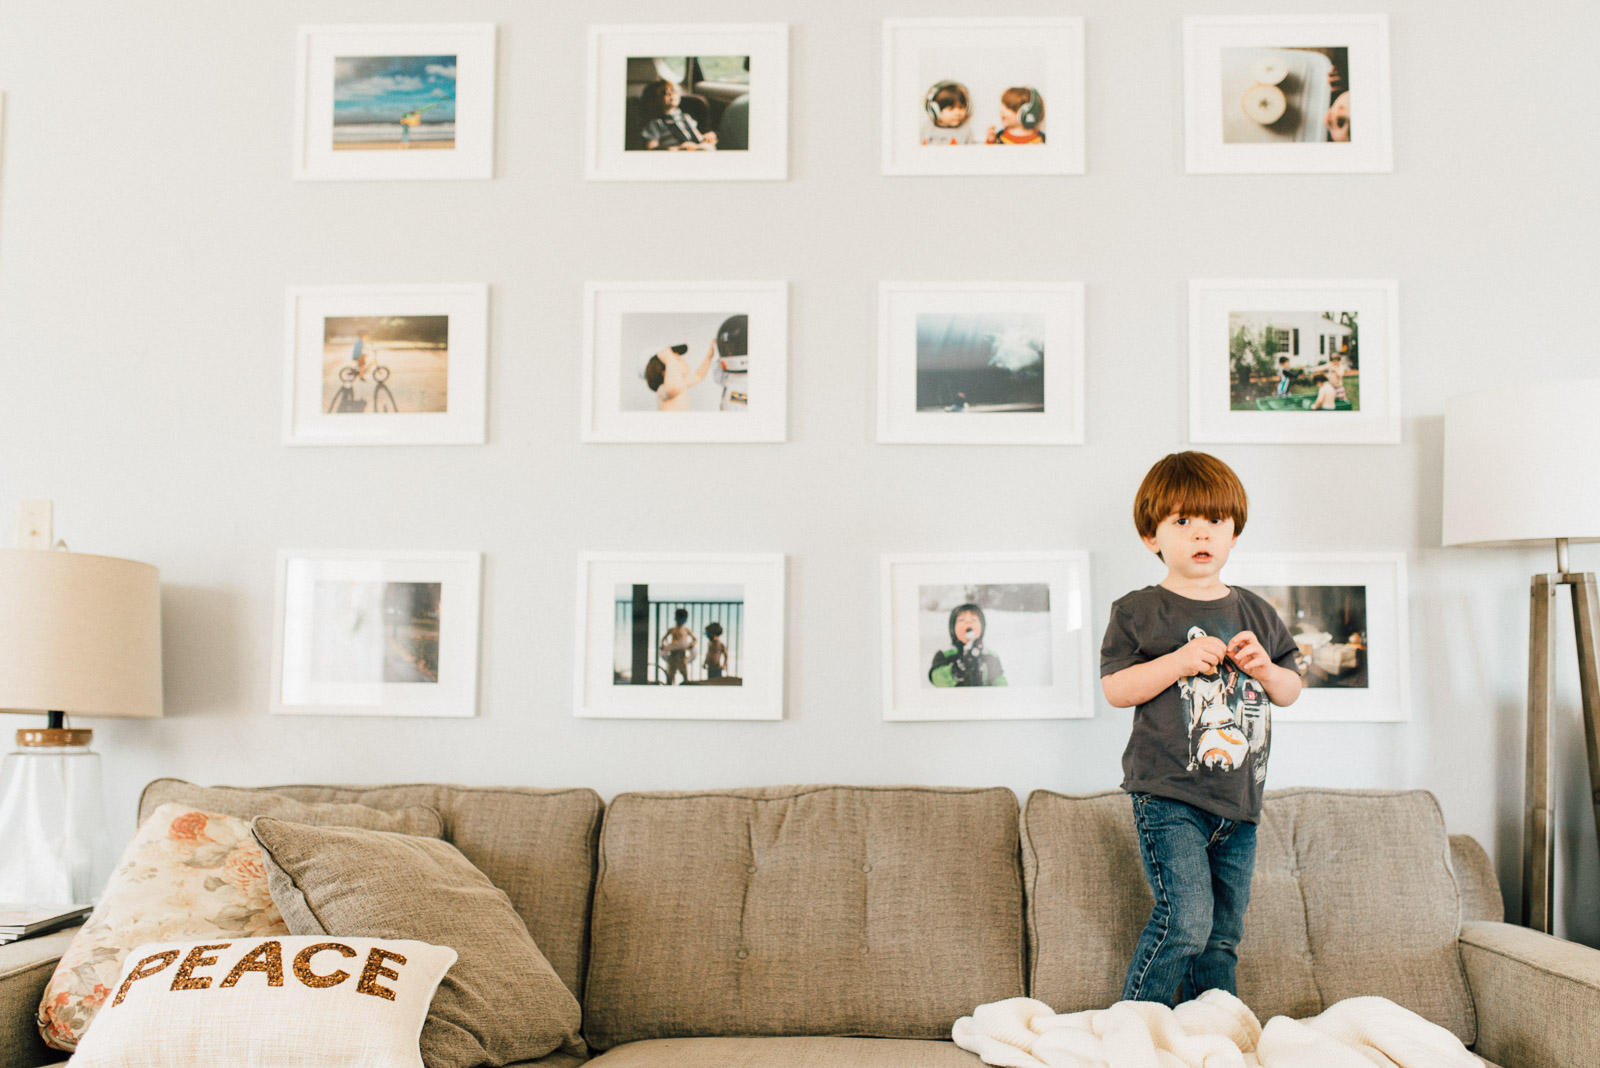 picture of kid standing on a couch with photos on the wall behind him by Andrea Moffatt